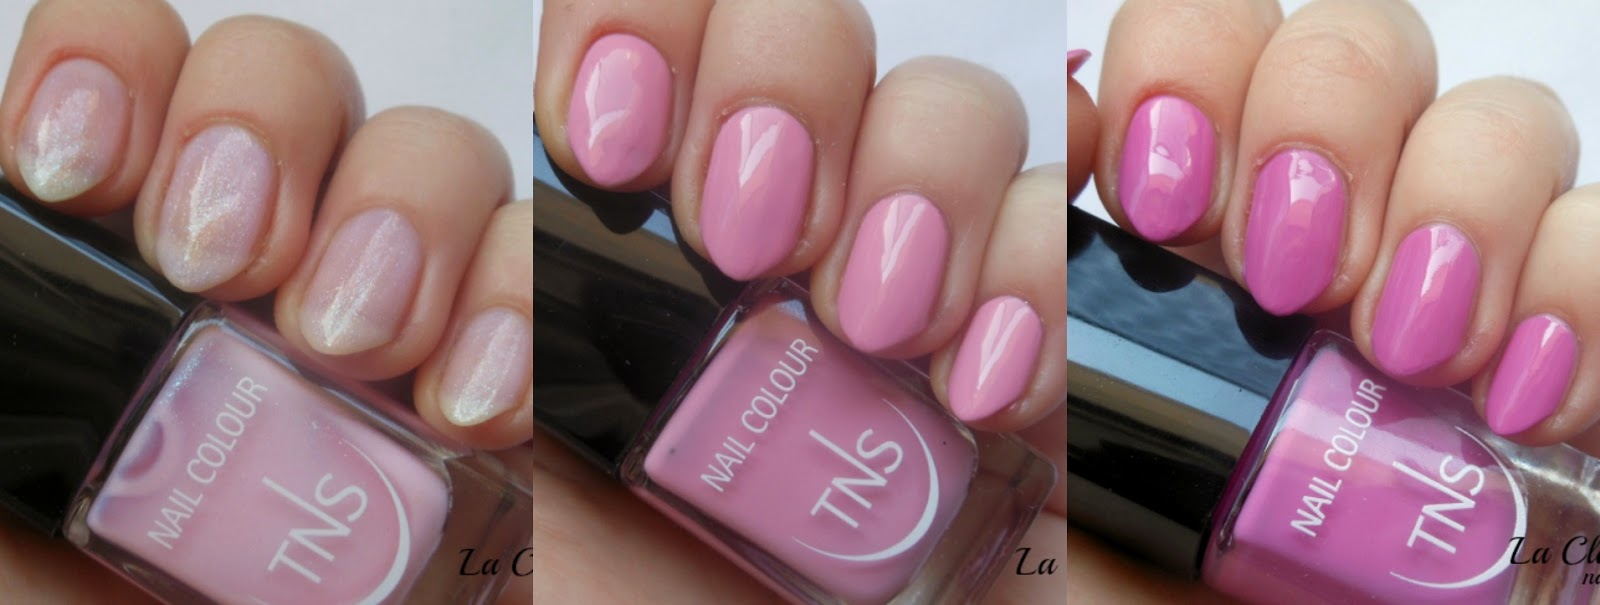 http://laclairenailart.blogspot.it/2015/03/smalti-tns-cosmetics-la-vie-en-rose.html